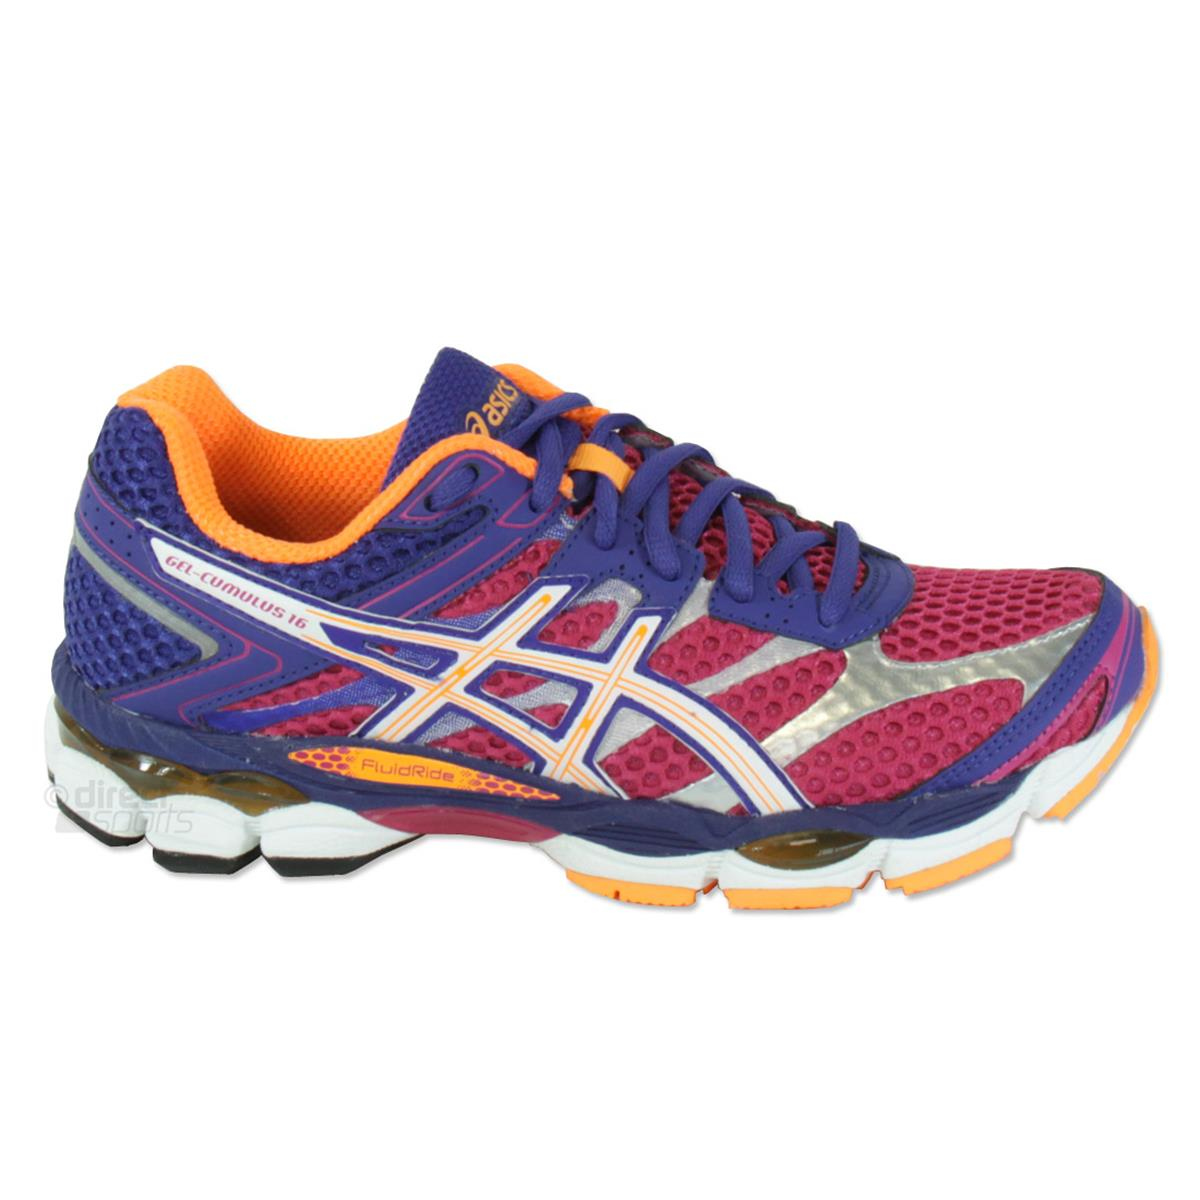 Asics Gel-Cumulus 16 Women's Running Shoes SS15 Womens Blue